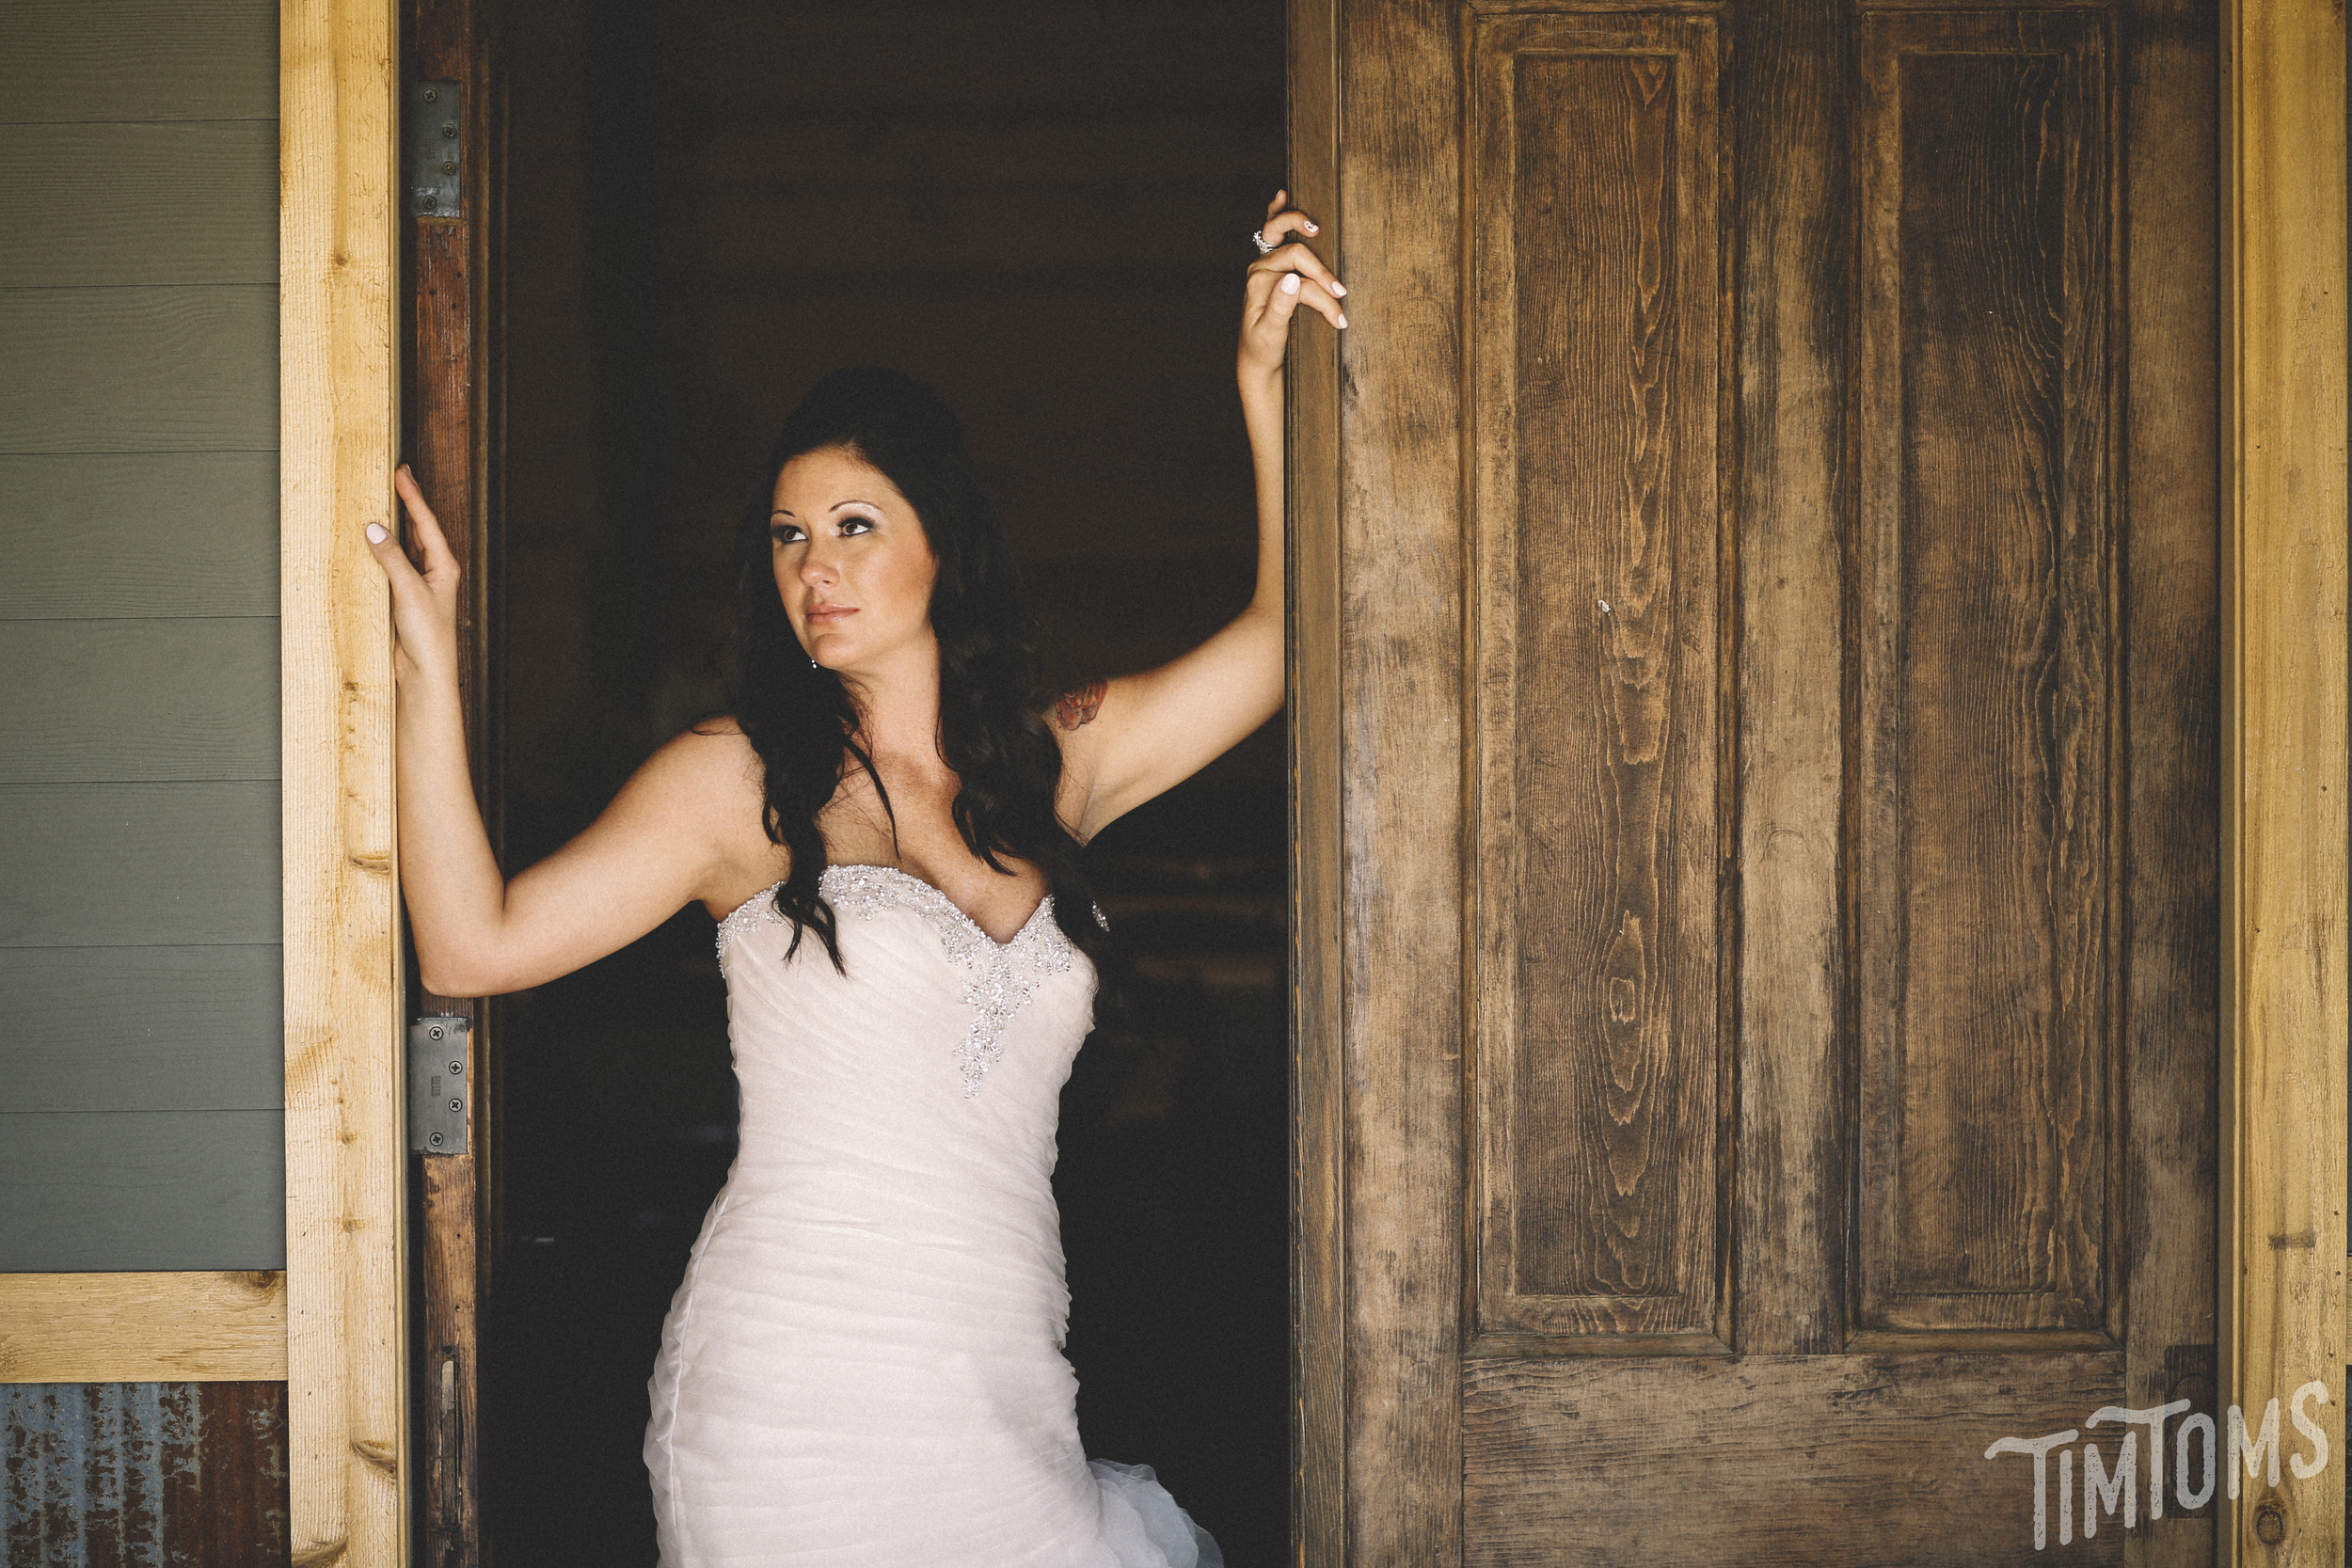 Bridal Session Tim Toms Photography